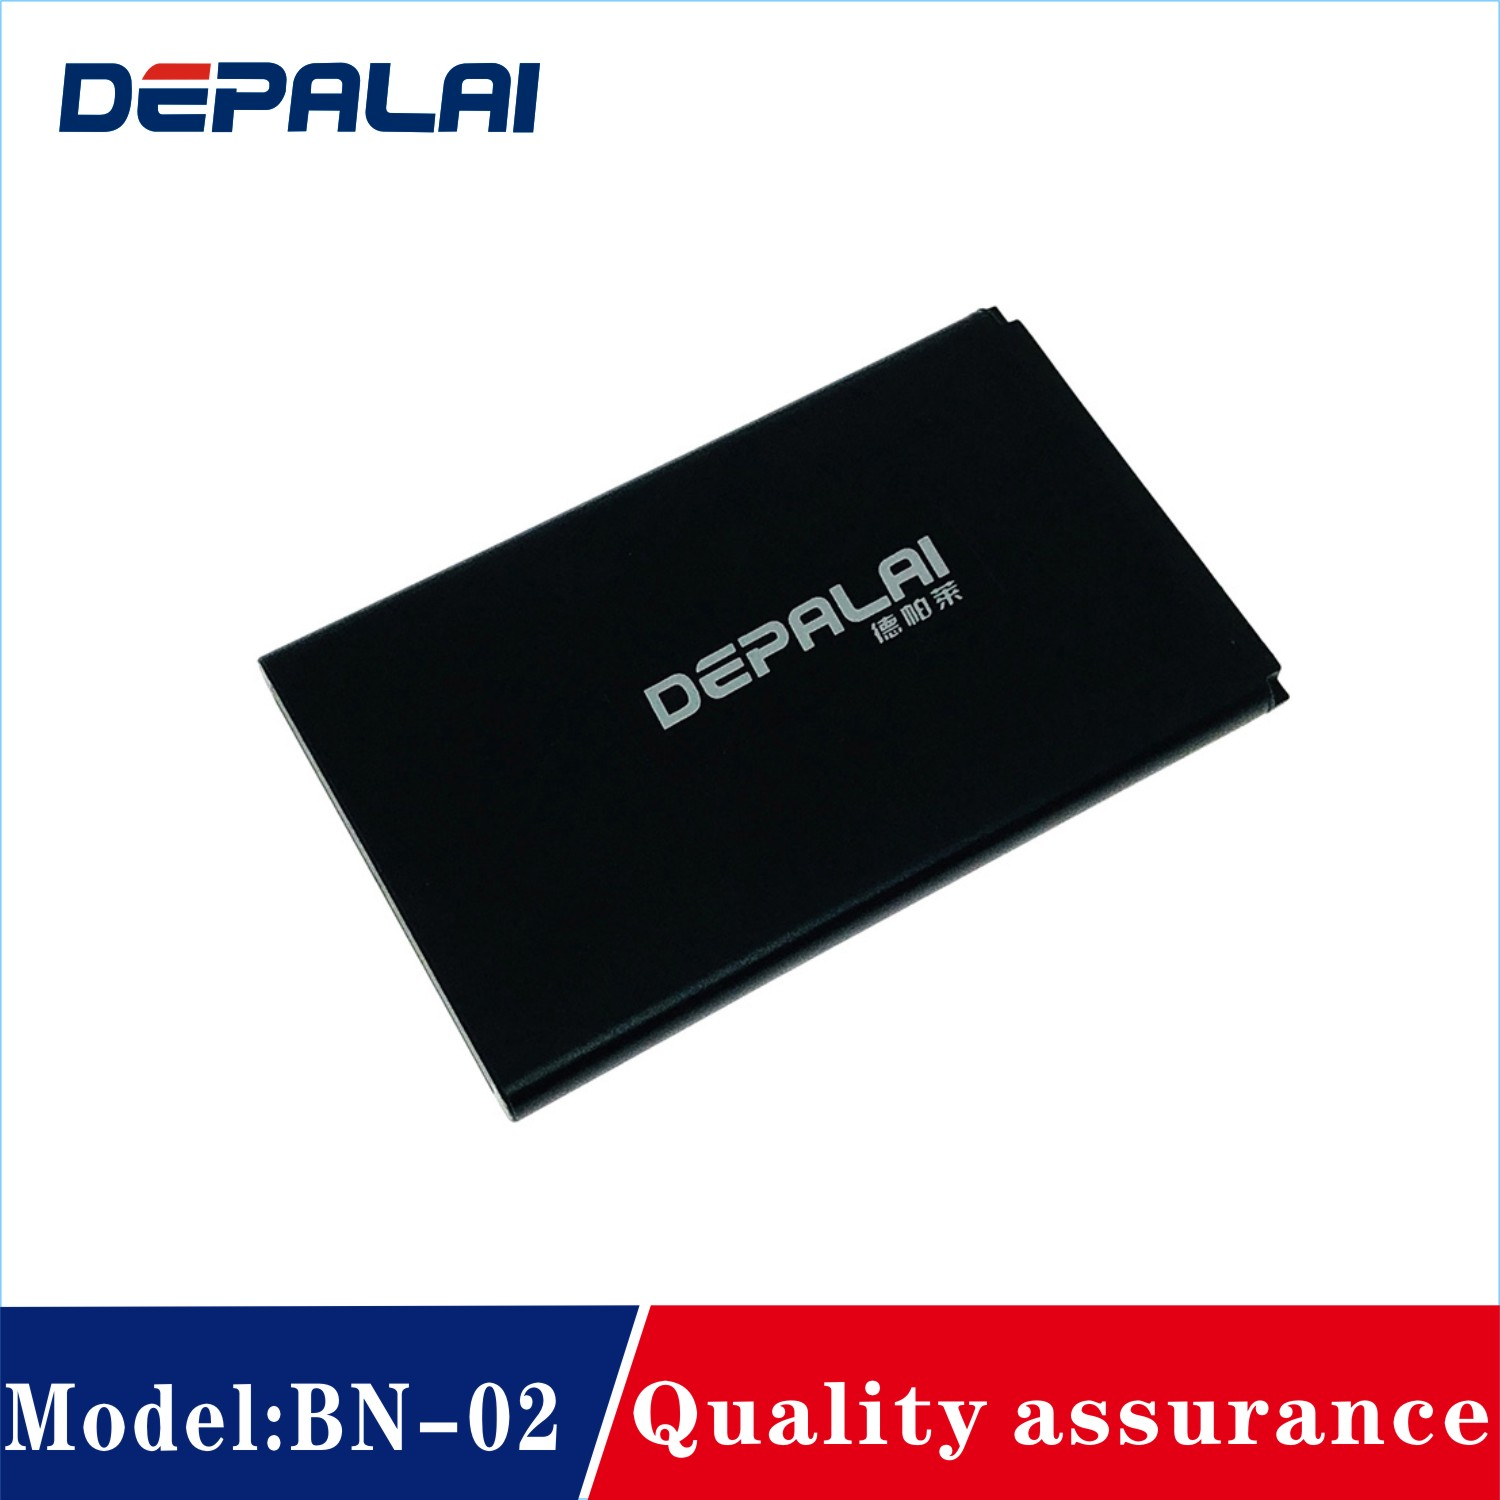 NEW Bateria <font><b>BN02</b></font> BYD BN-02 2000mAh Replacement Battery For Nokia XL/XL 4G RM-1061 RM-1030 RM-1042 BYD BN-02 image